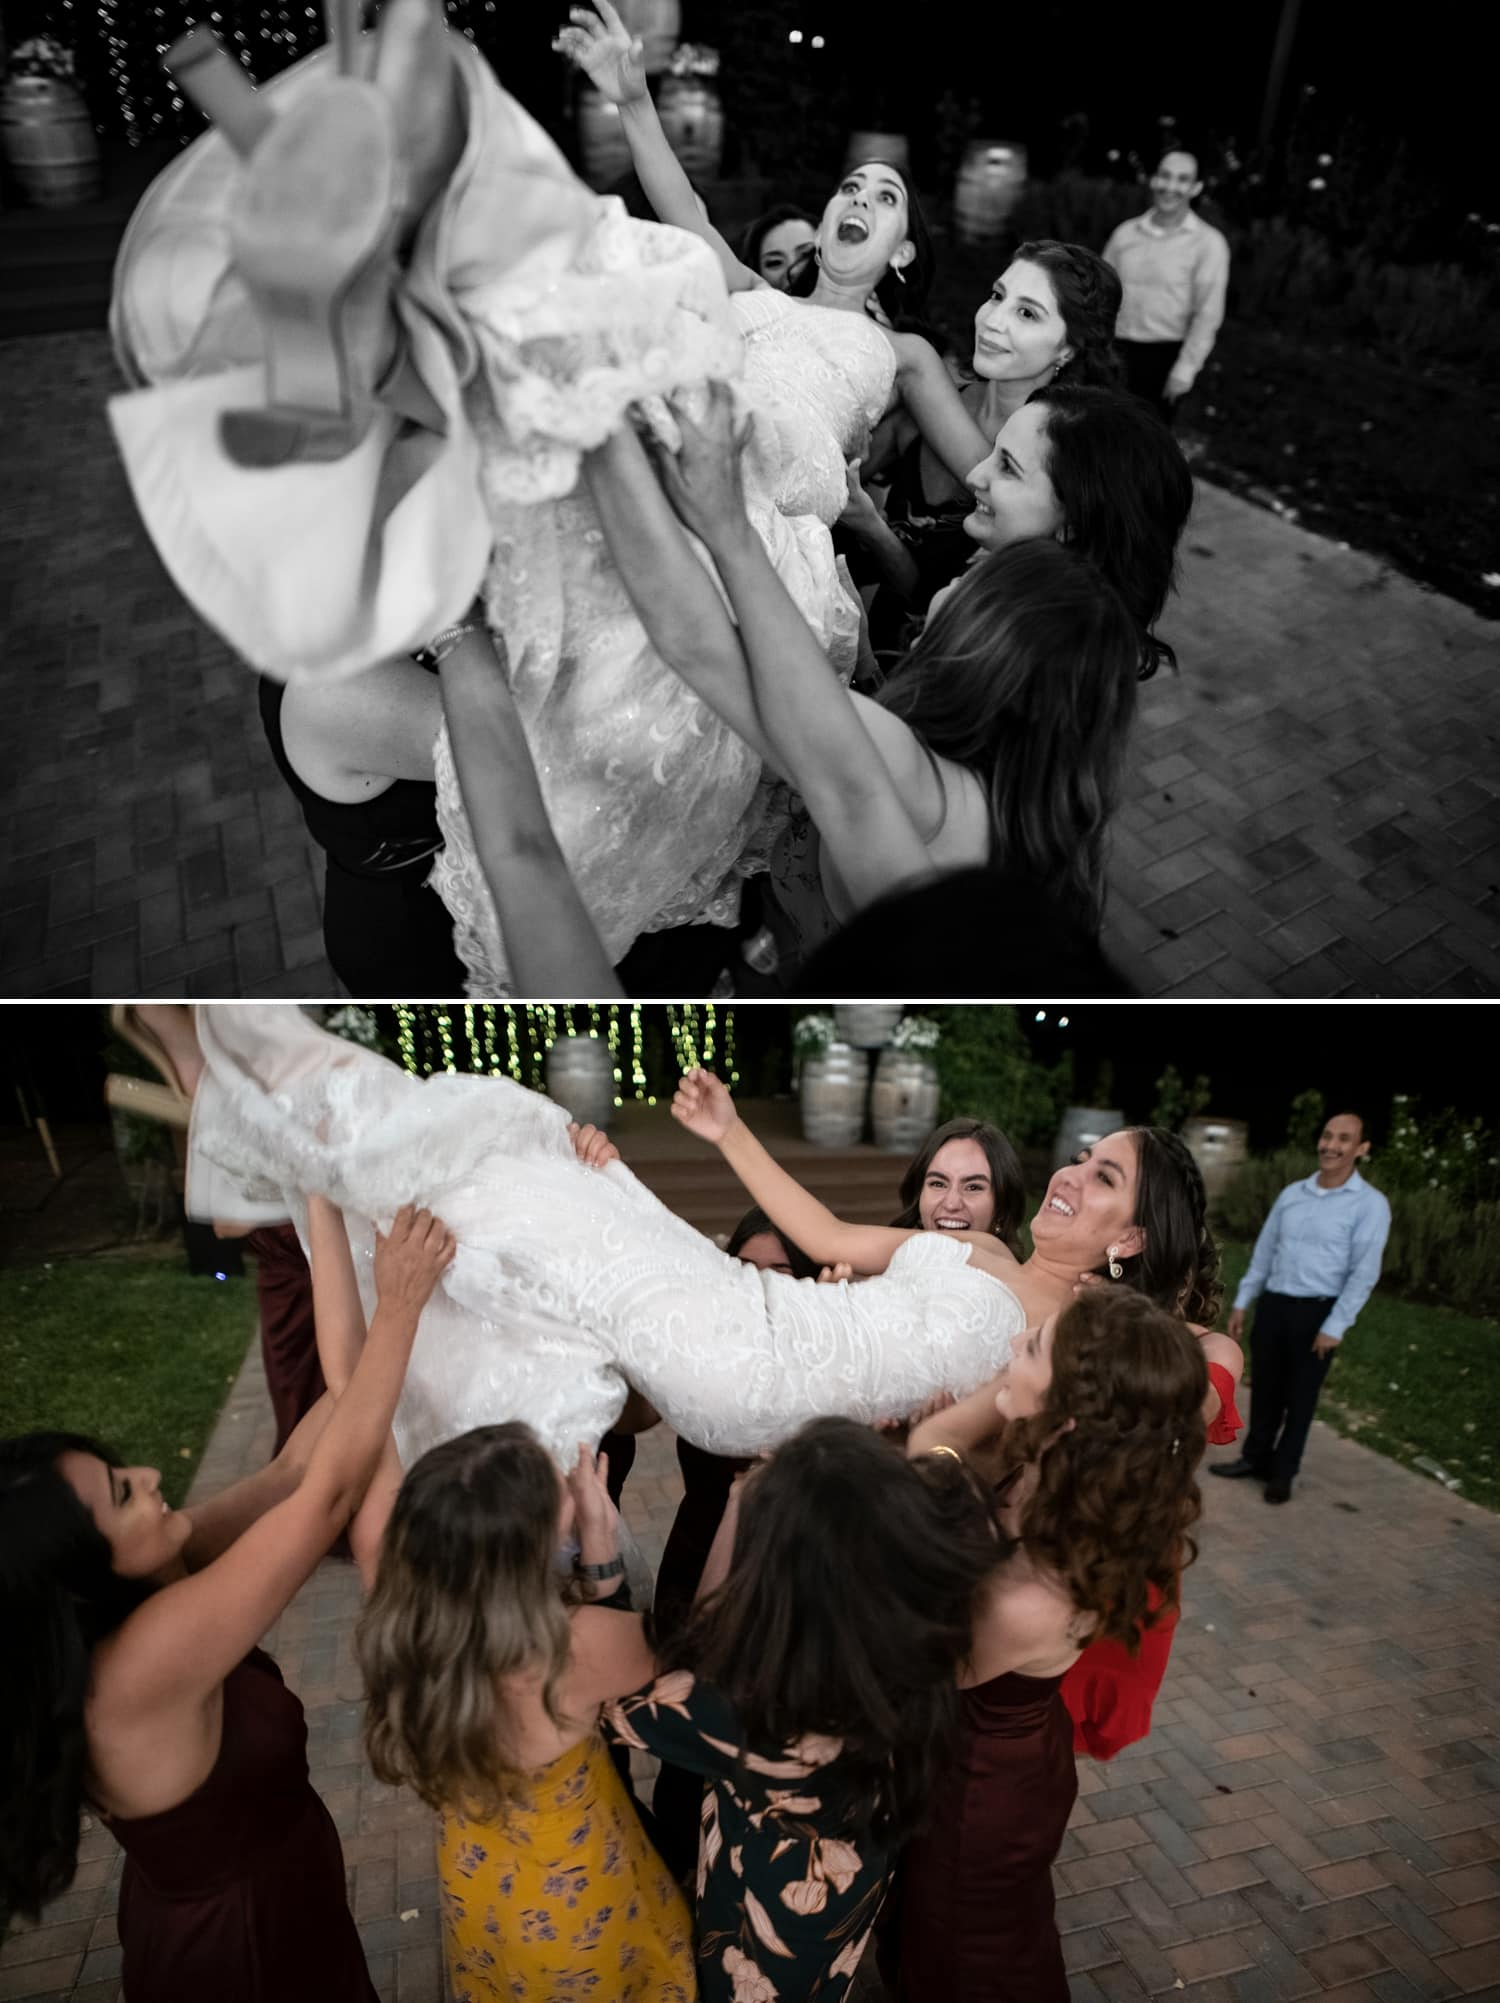 Bride bring lifted up in the air at her wedding in Temecula.